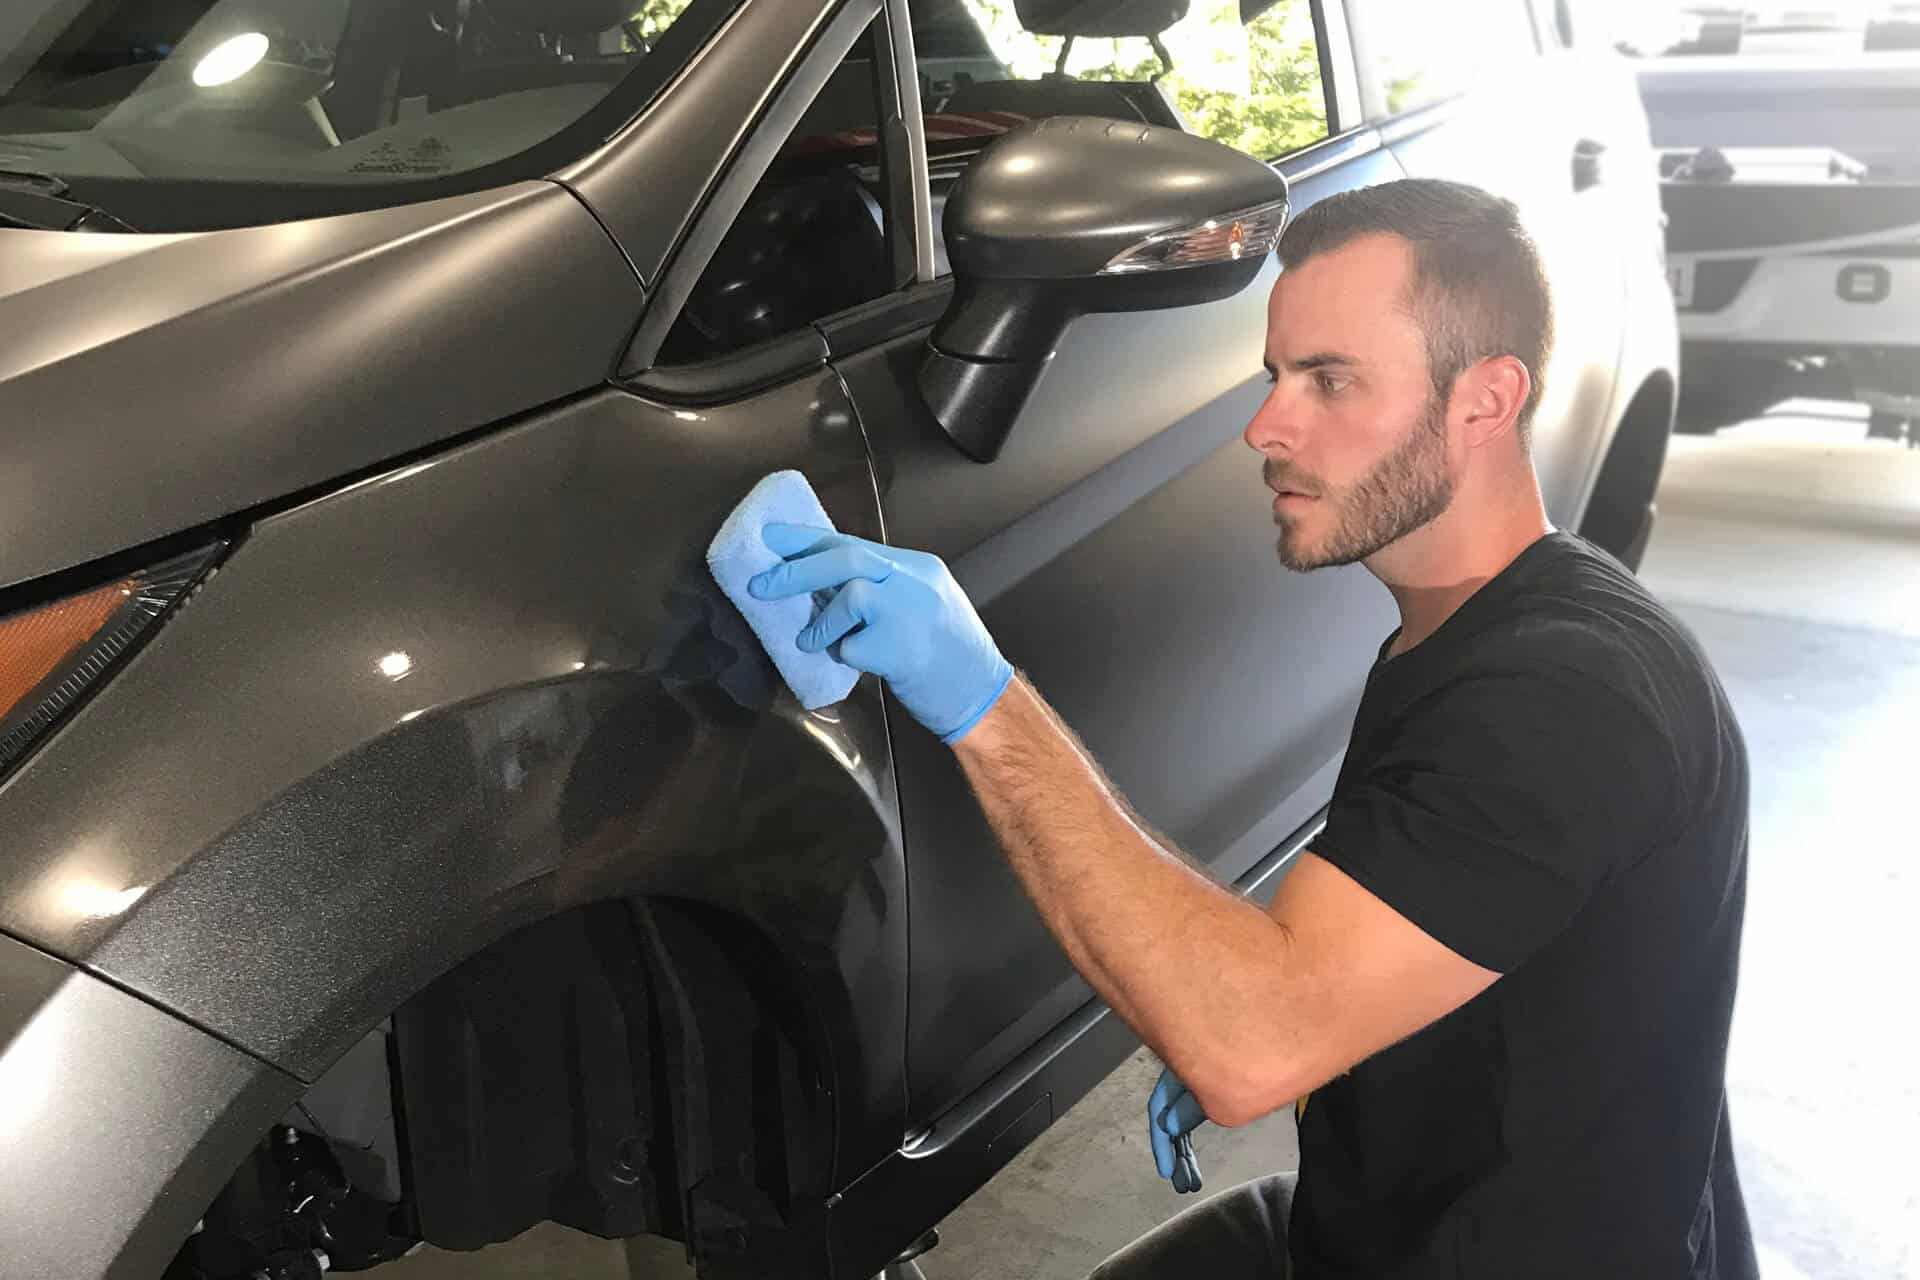 Tyler O'Hara working on ceramic coating